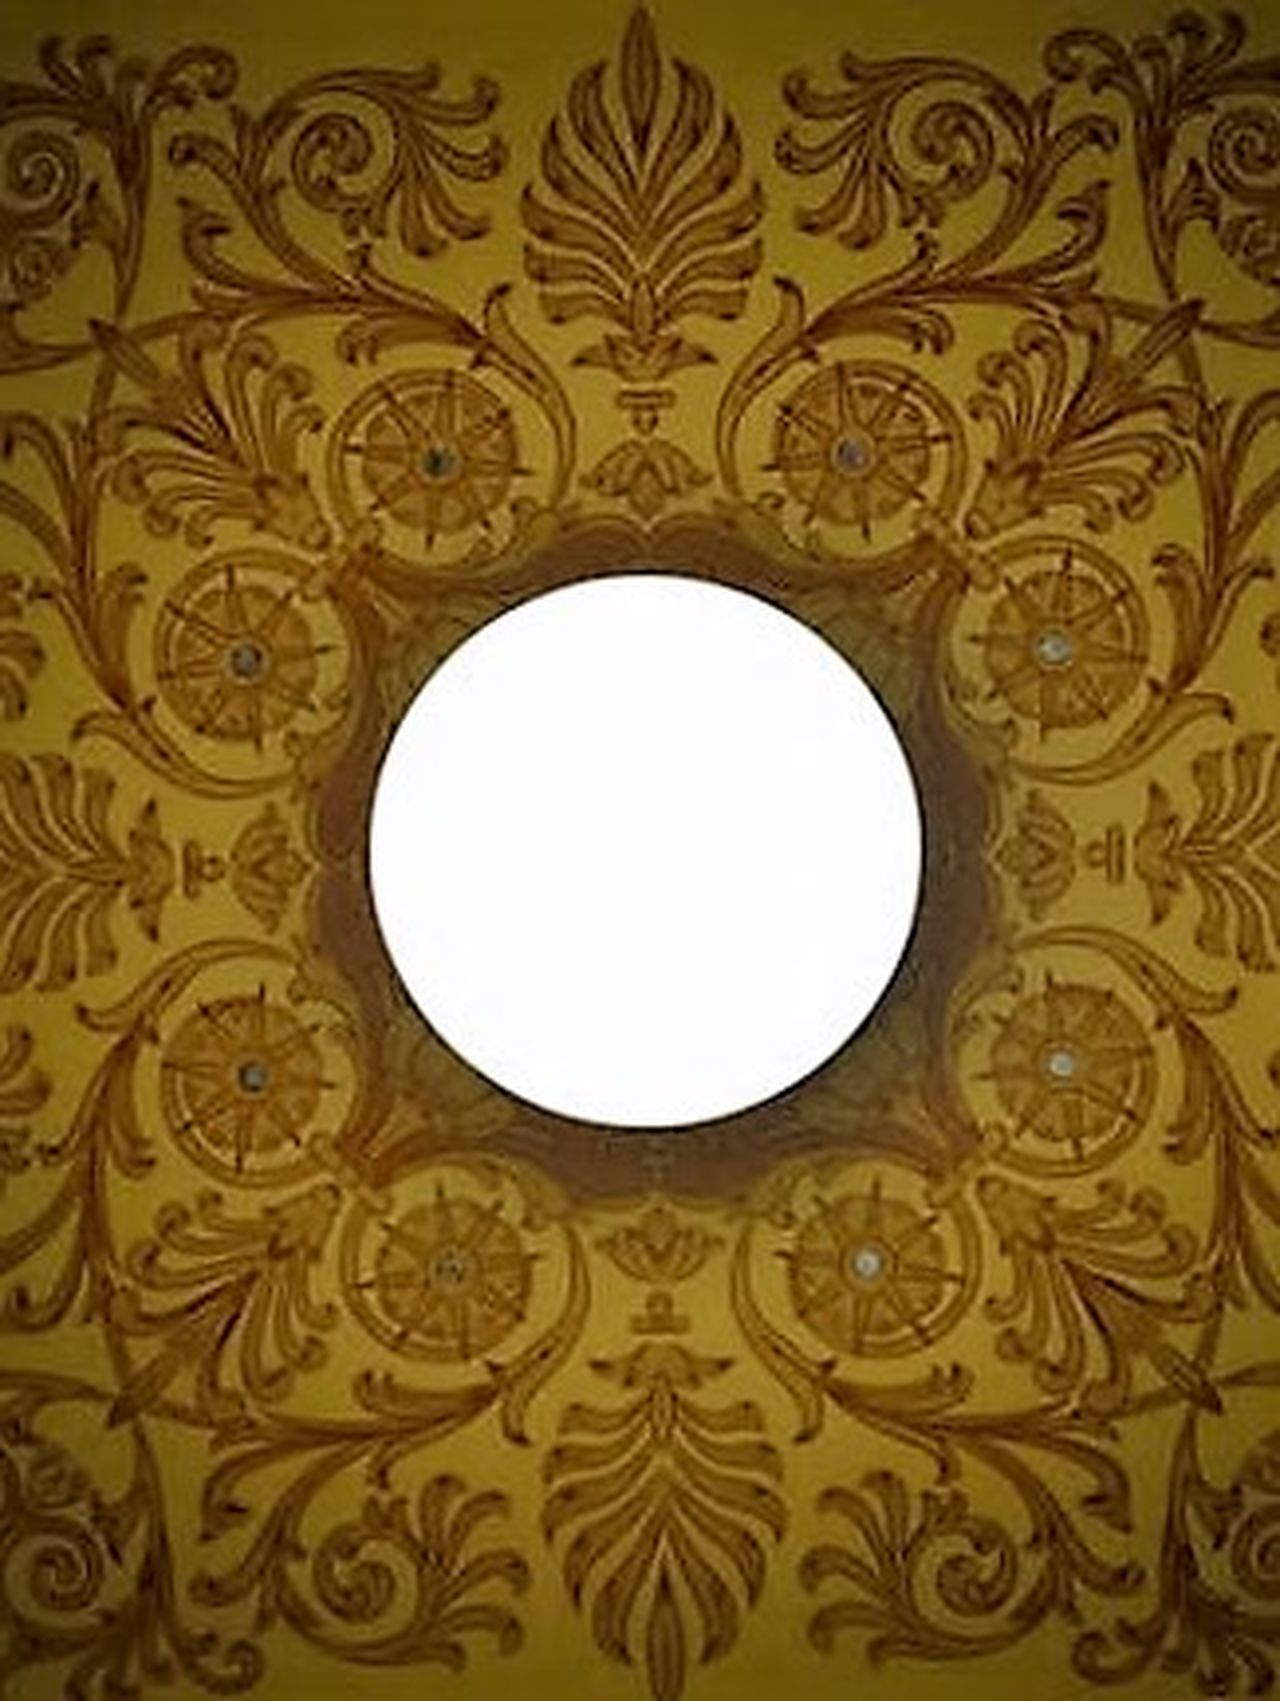 Architectural Feature Architectural Detail Designs Courthouse Ceiling Pattern Design Abstract Fort Wayne Indiana Downtown Light And Shadow Light Bulb Centered Centerpoint Center Focus